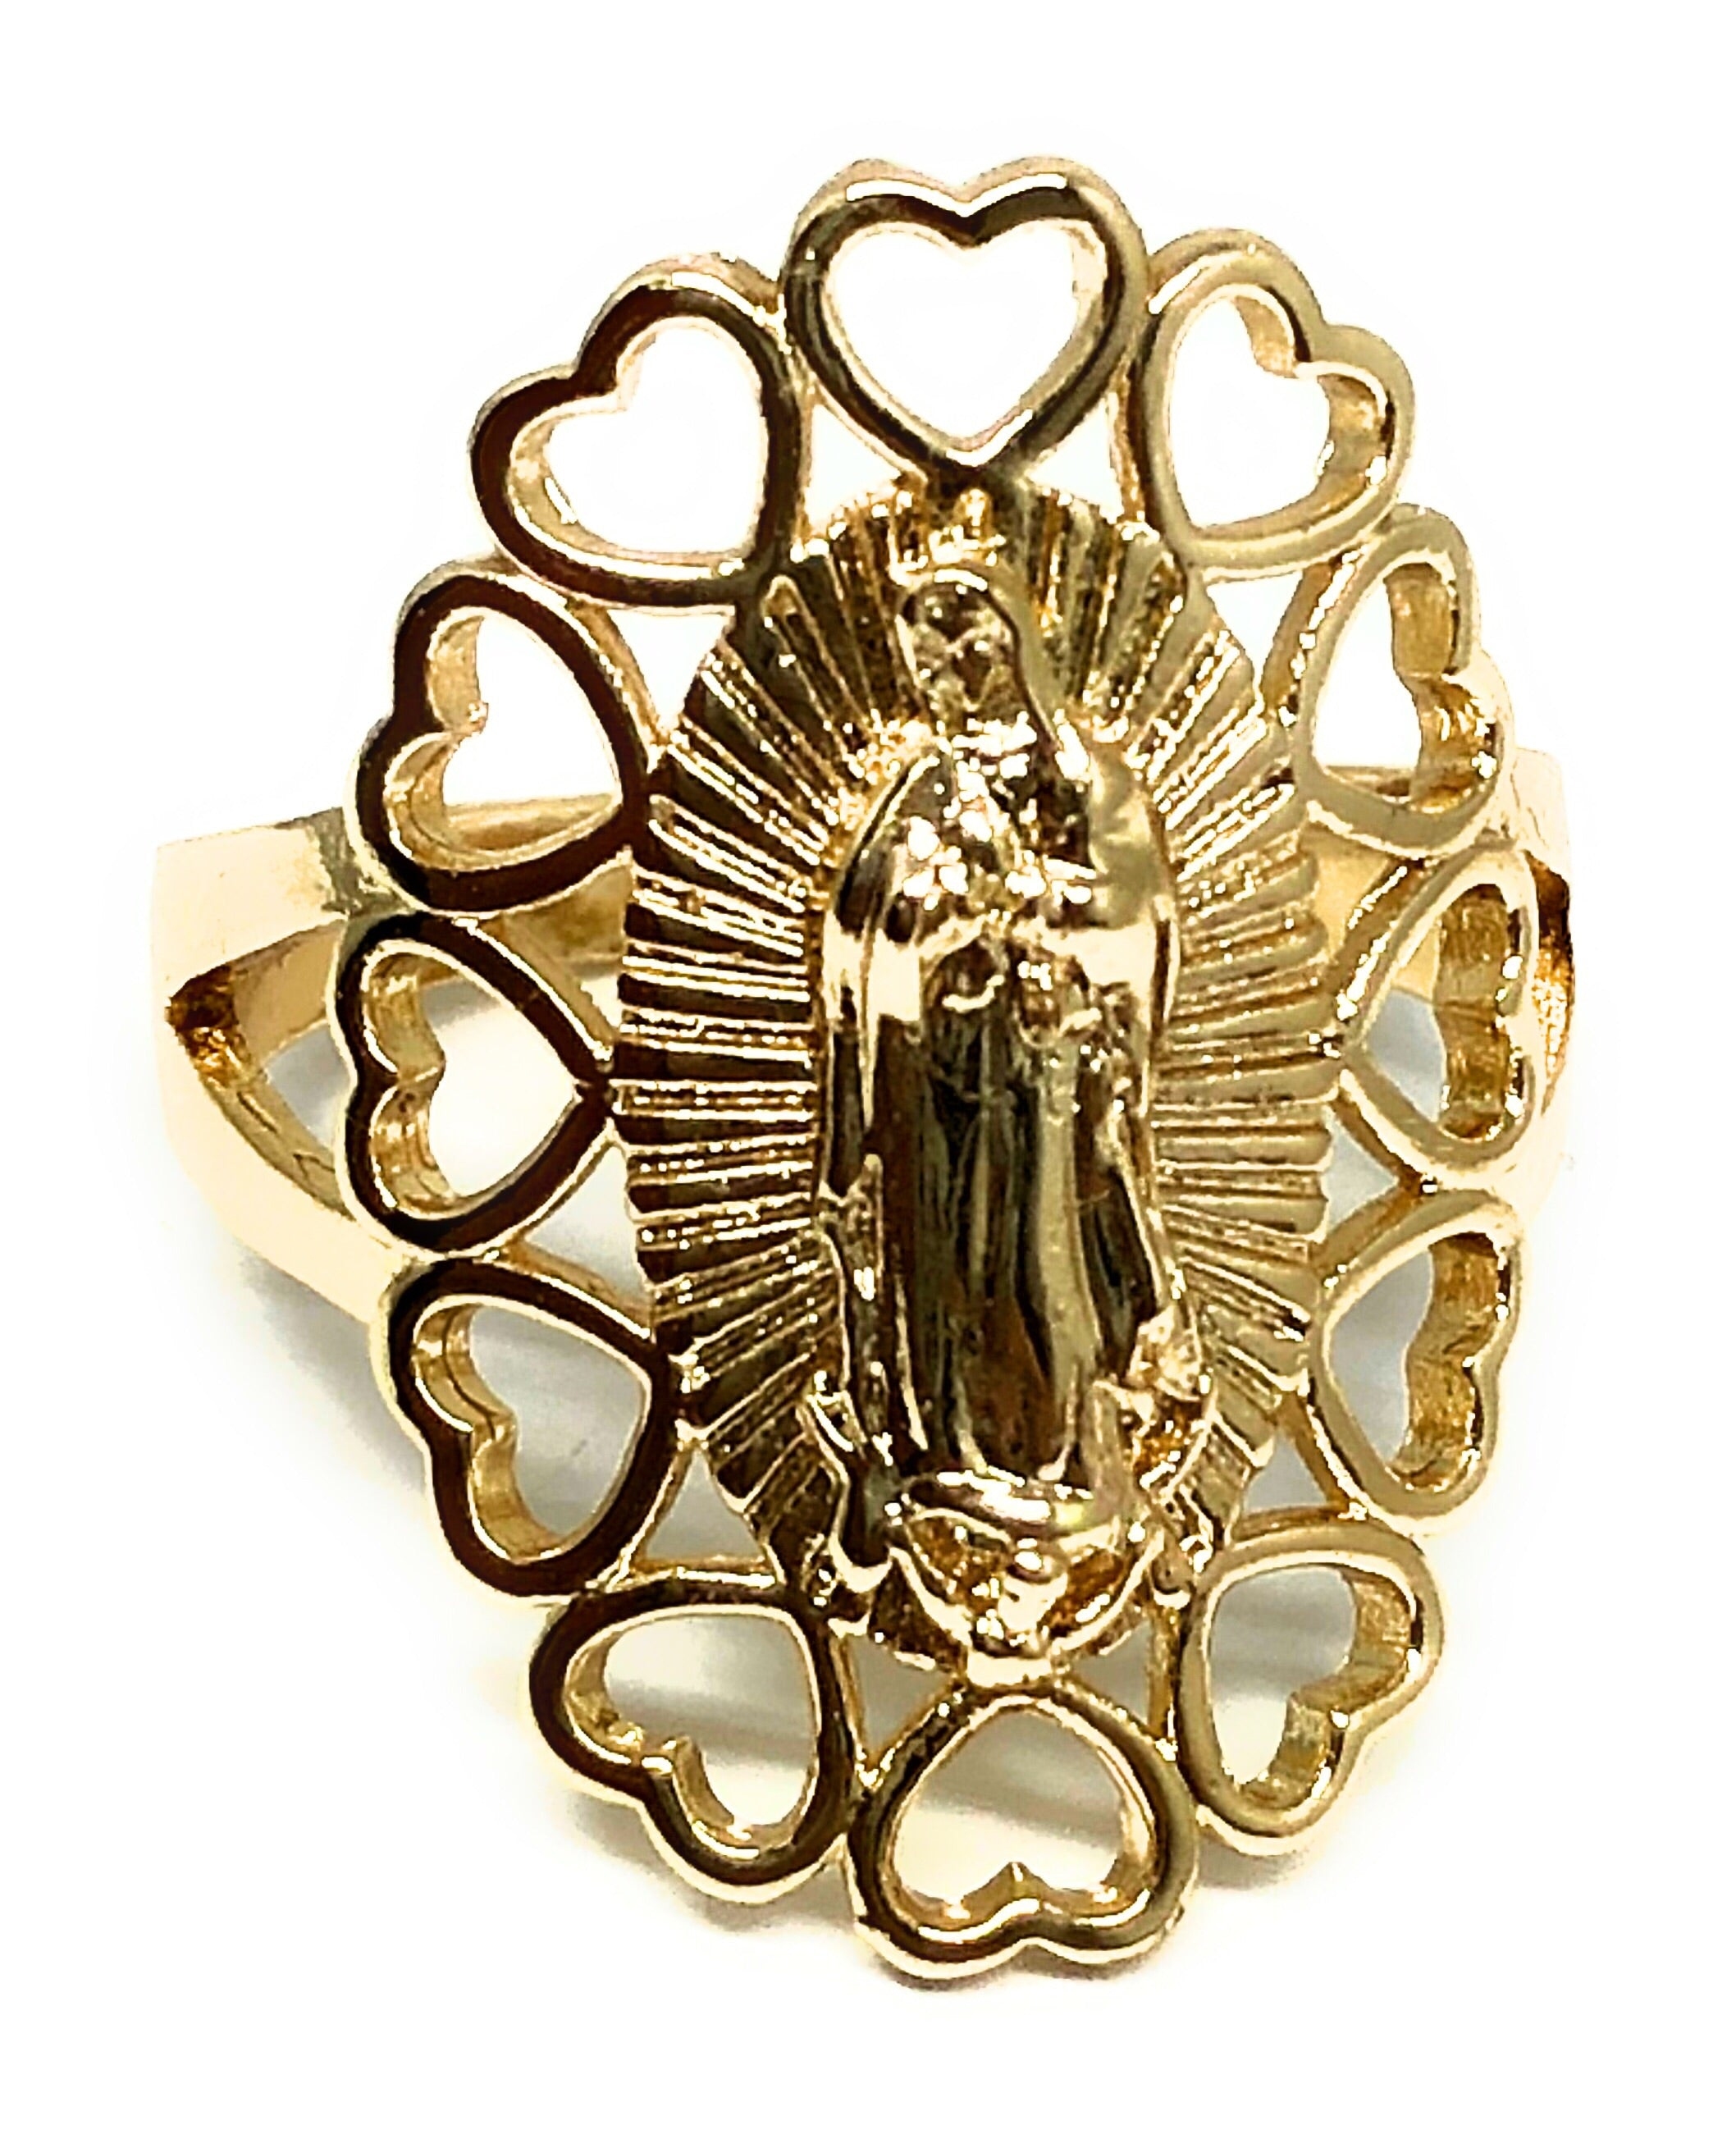 Gold Plated Virgin Mary Heart Ring Virgen De Guadalupe Corazon Anillo - Fran & Co. Jewelry